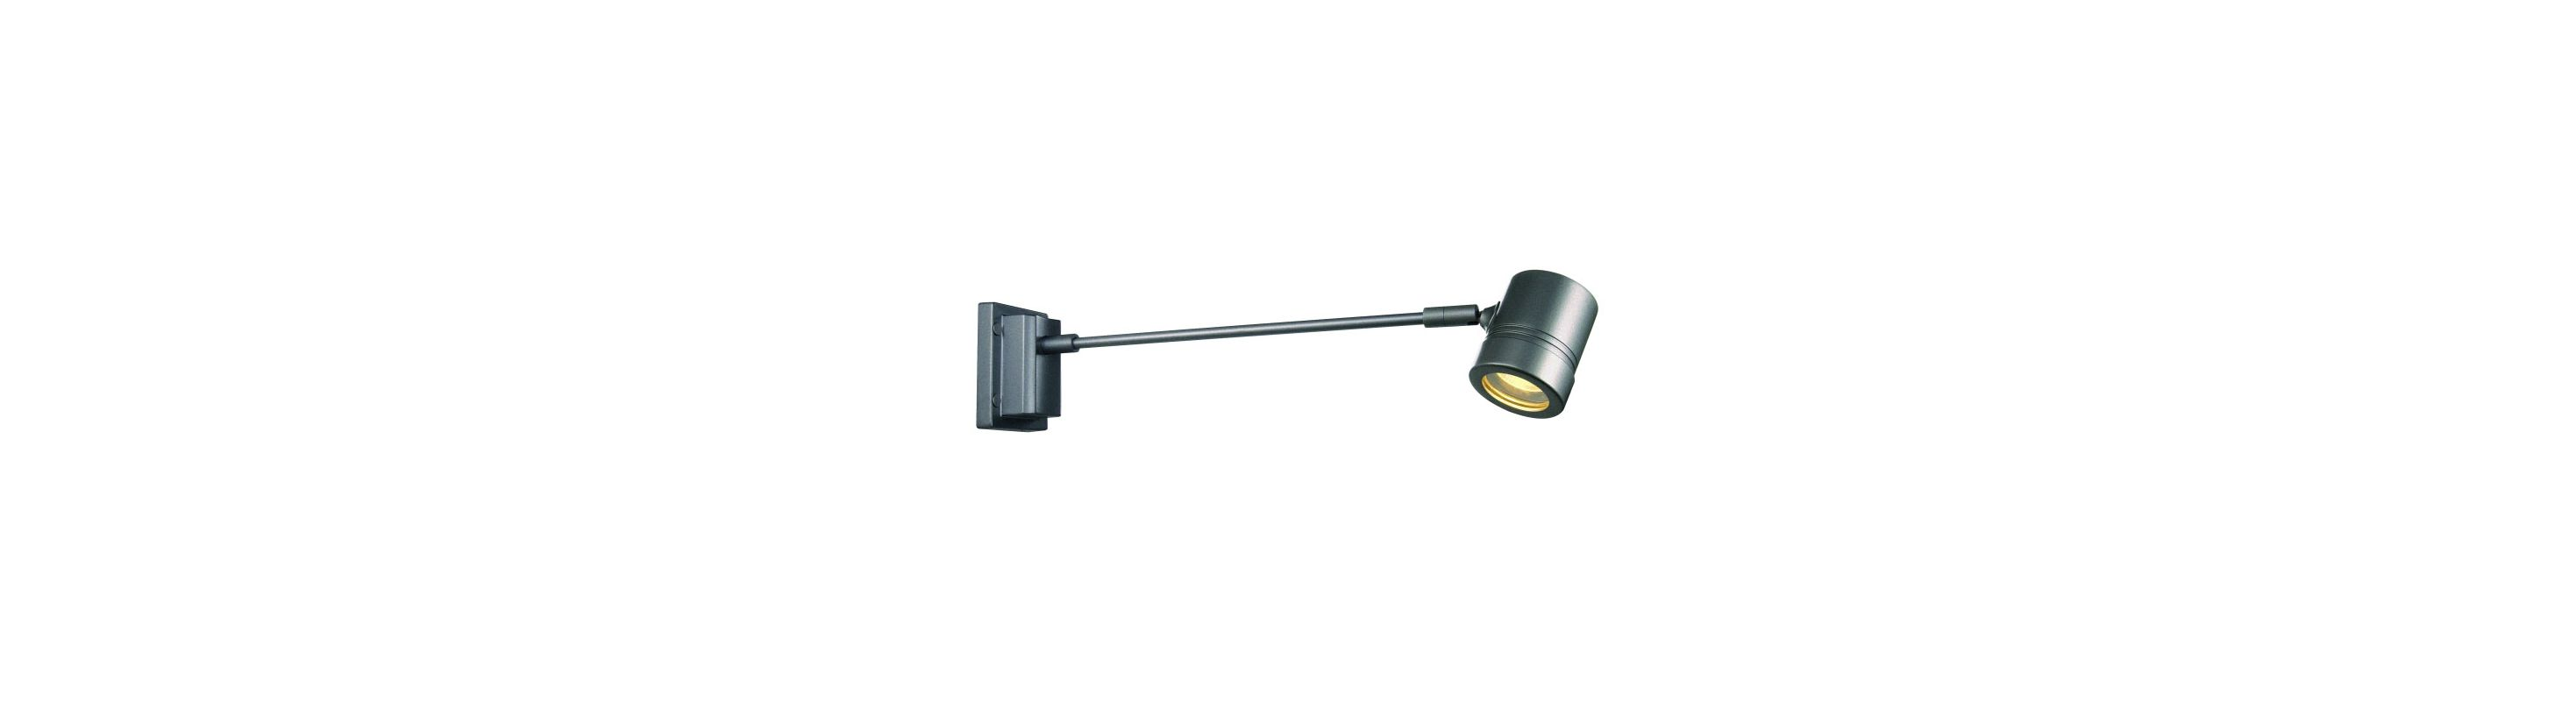 SLV Lighting 322884U 1 Light Outdoor Landscape Light from the Myra